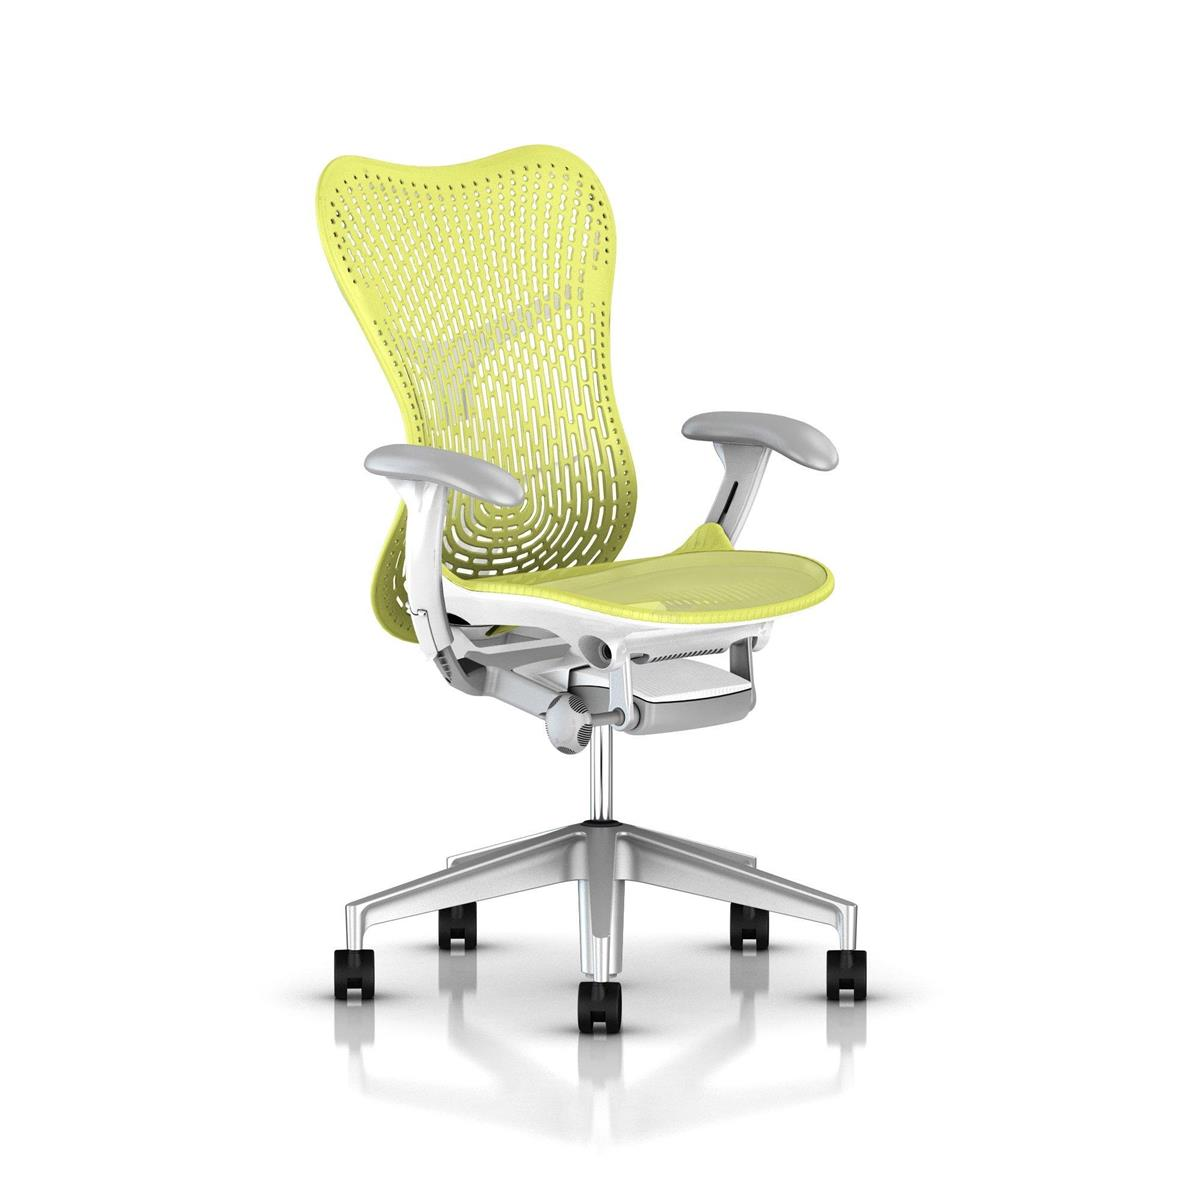 Mirra 2 Lime Green & Studio White / Fog og aluminium base